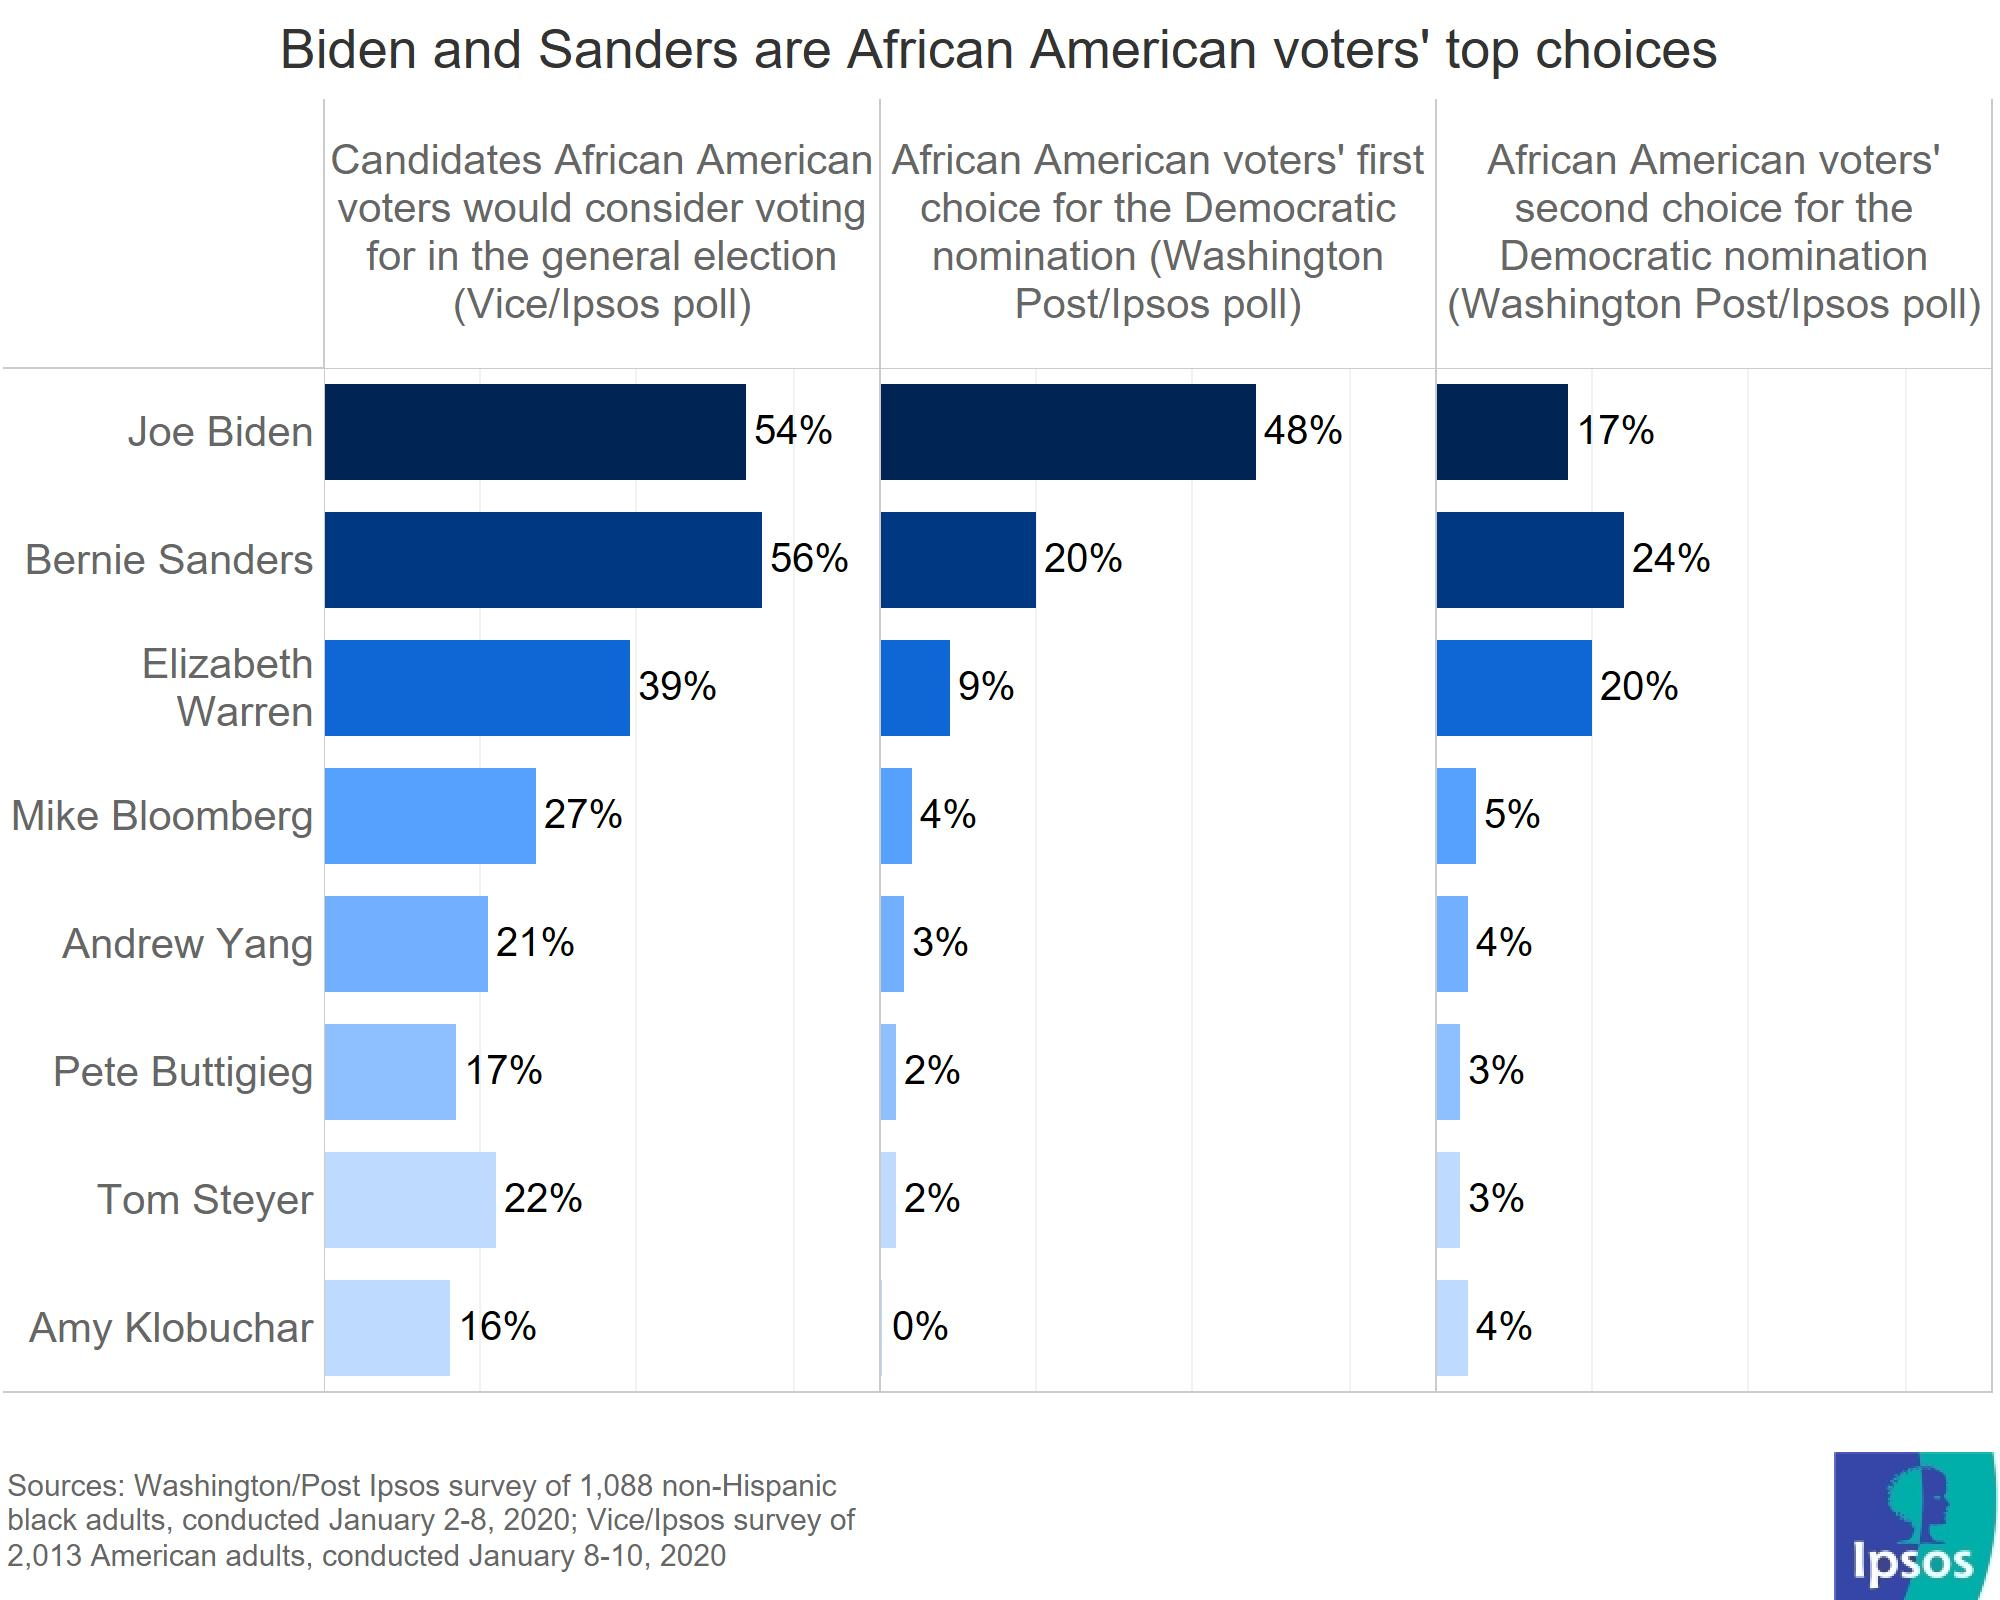 General election vs nomination African American preferences